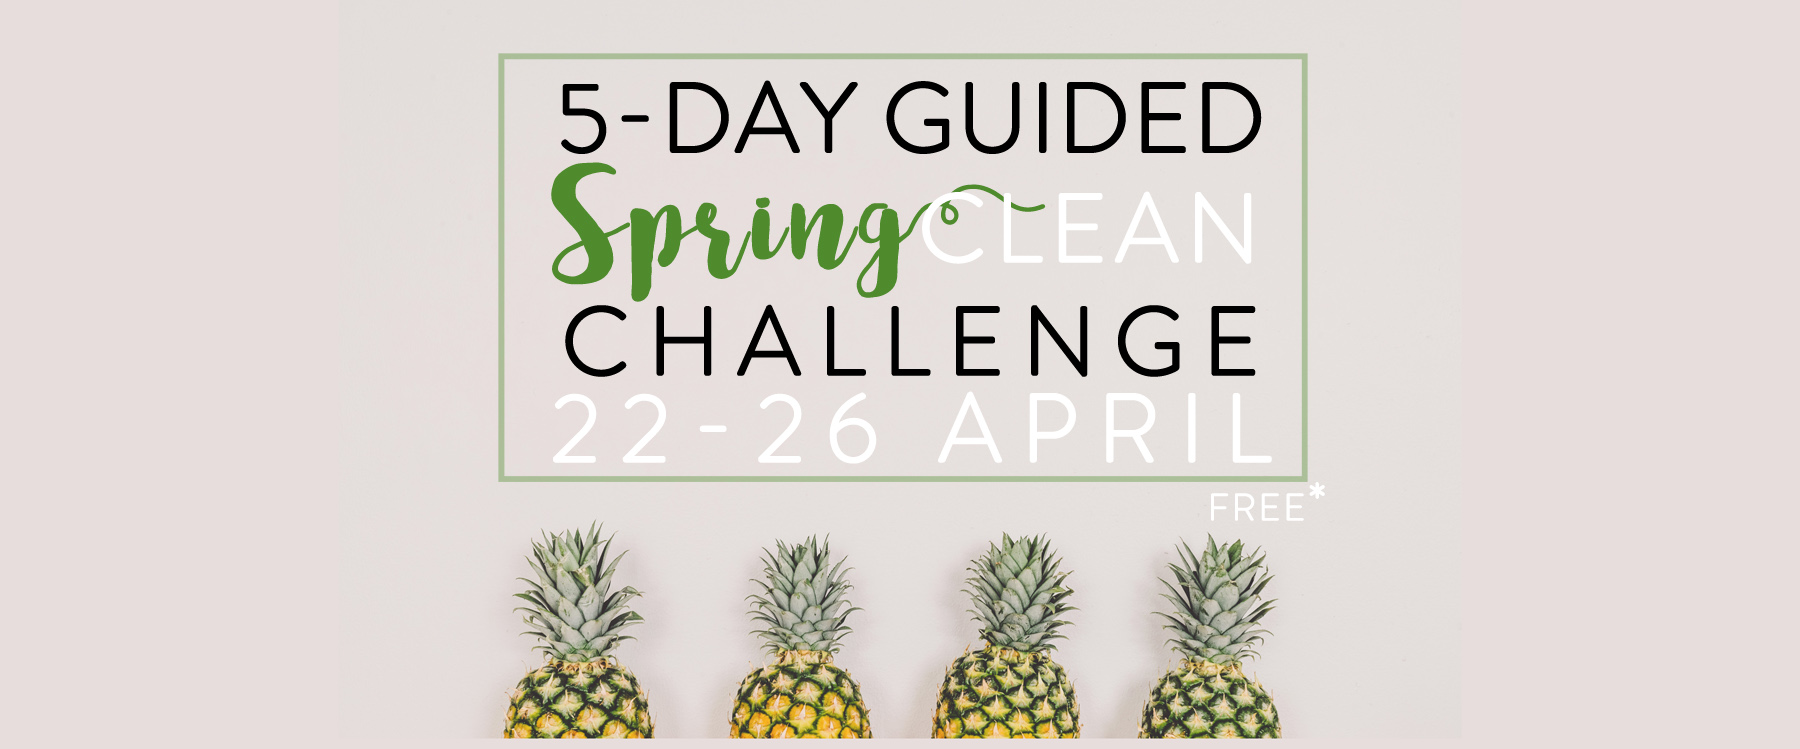 free-spring-clean-health-challenge-april